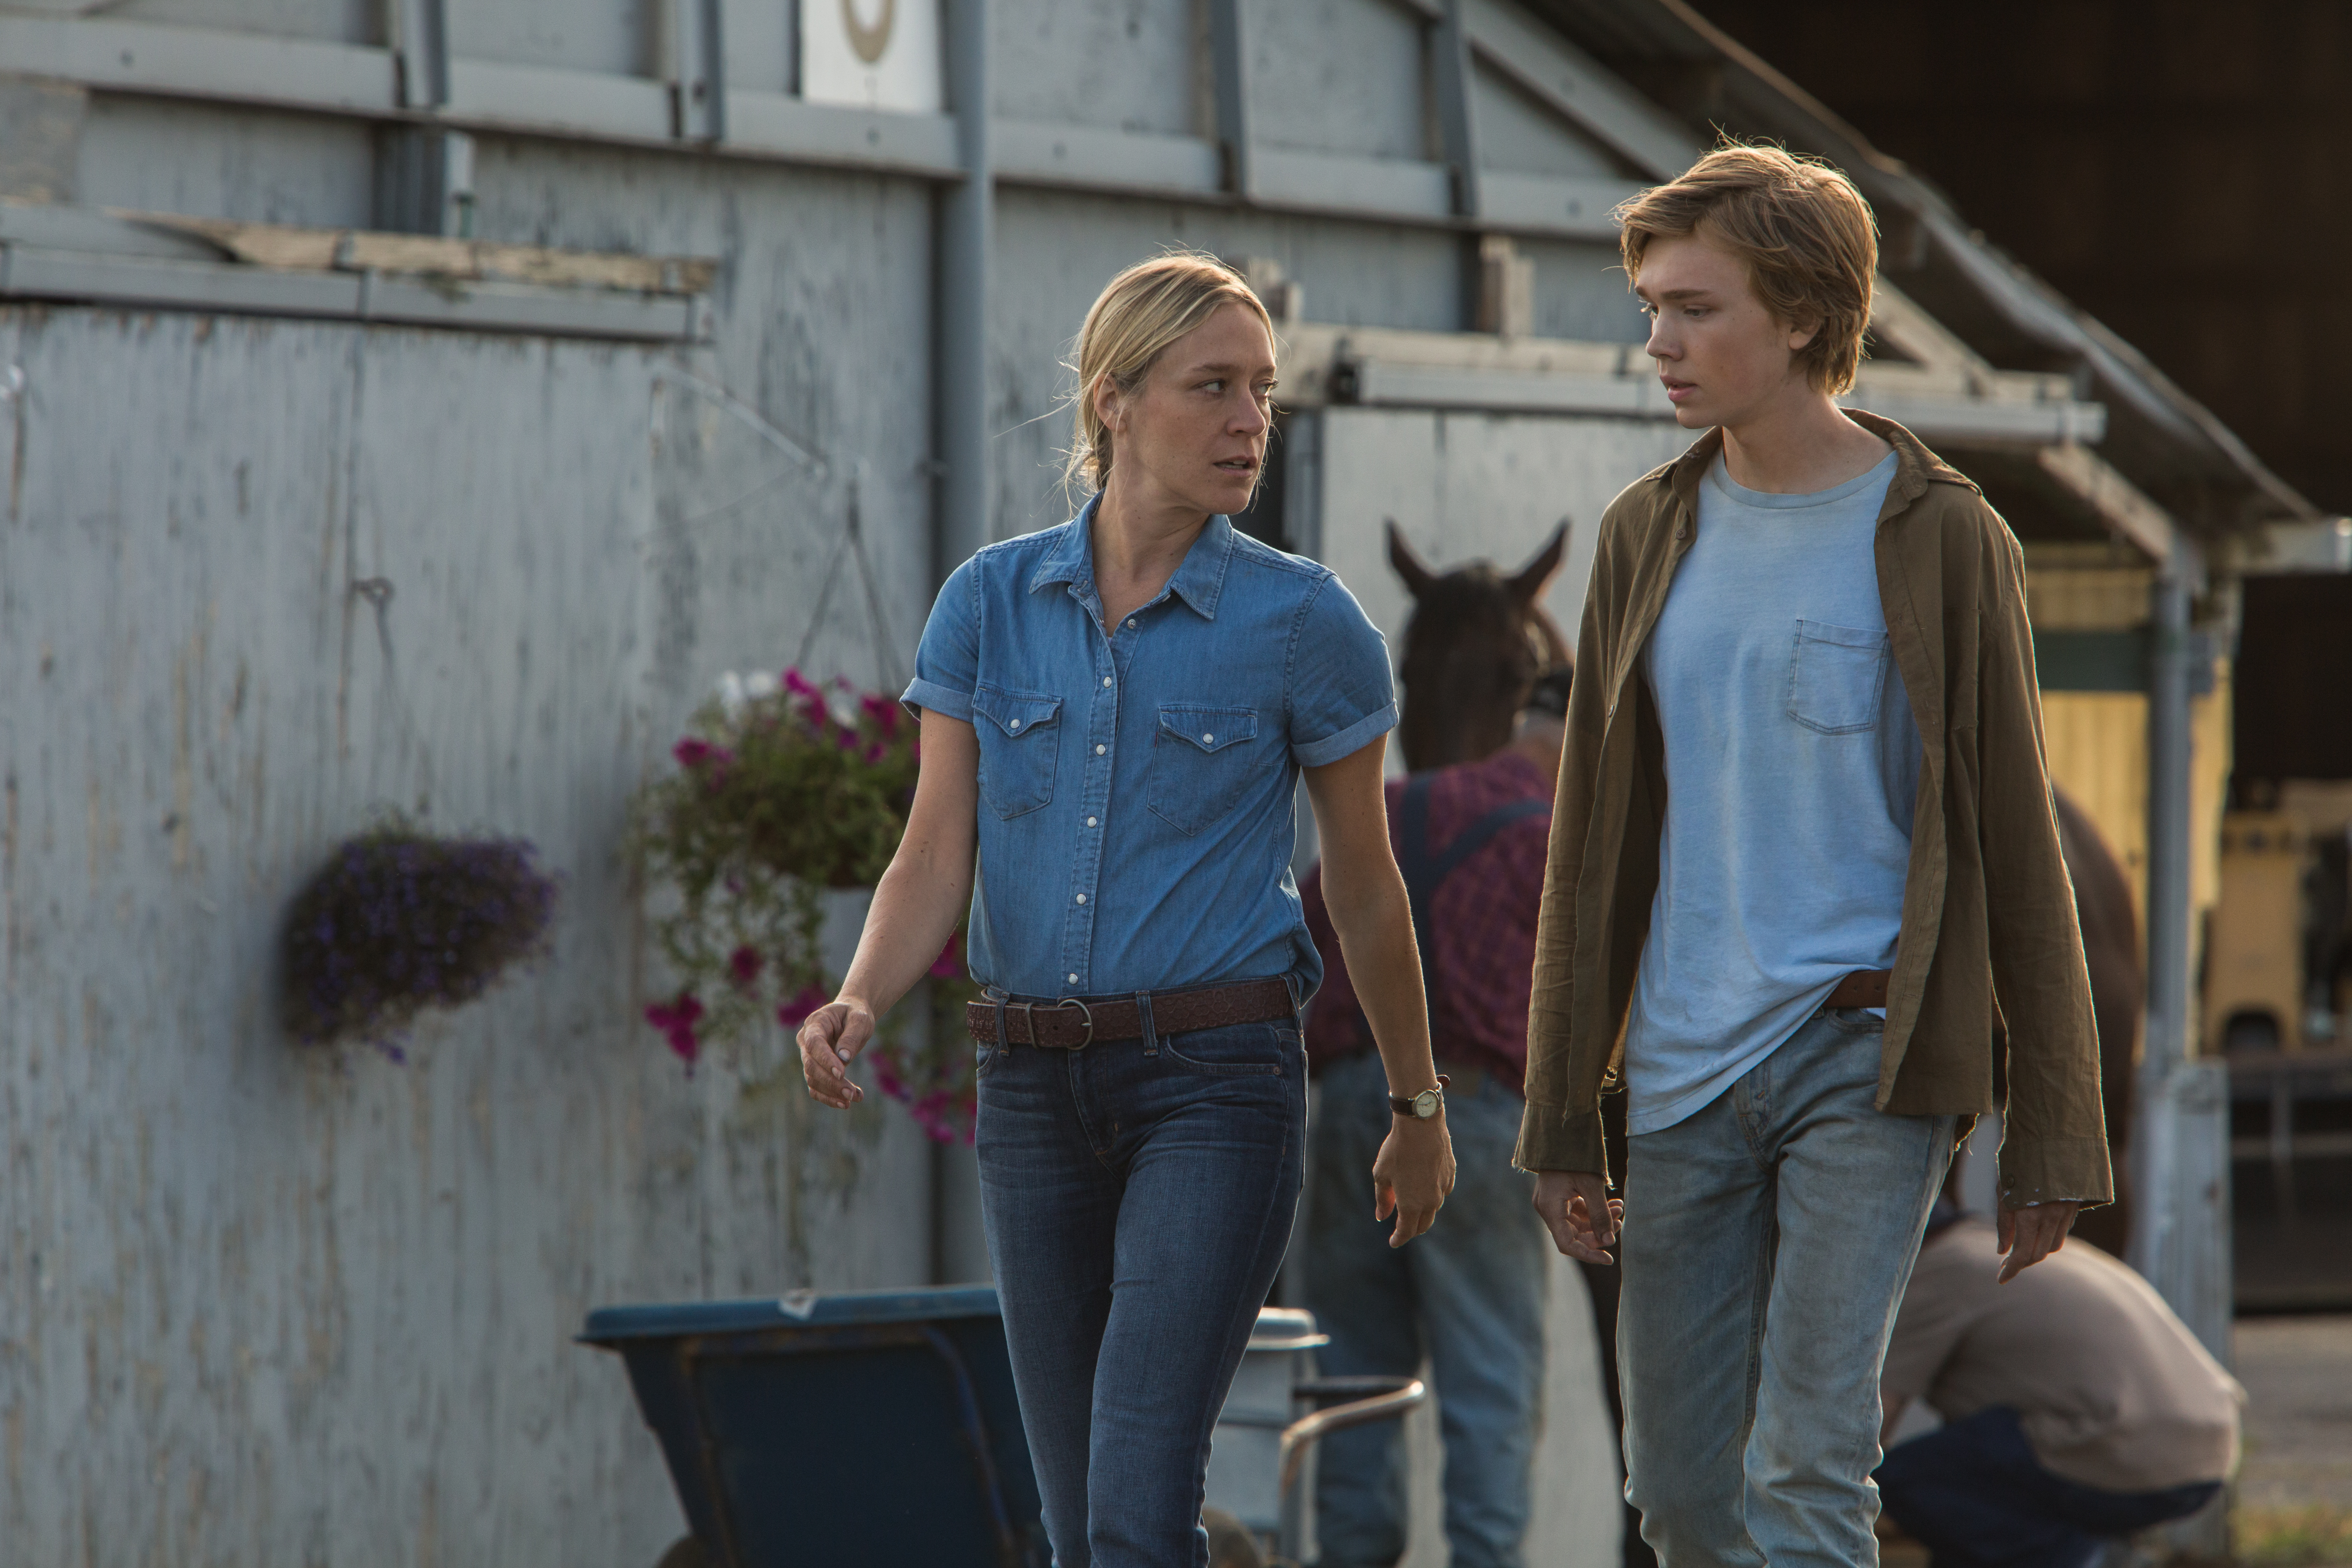 Chloë Sevigny and Charlie Plummer in Lean on Pete (2017)